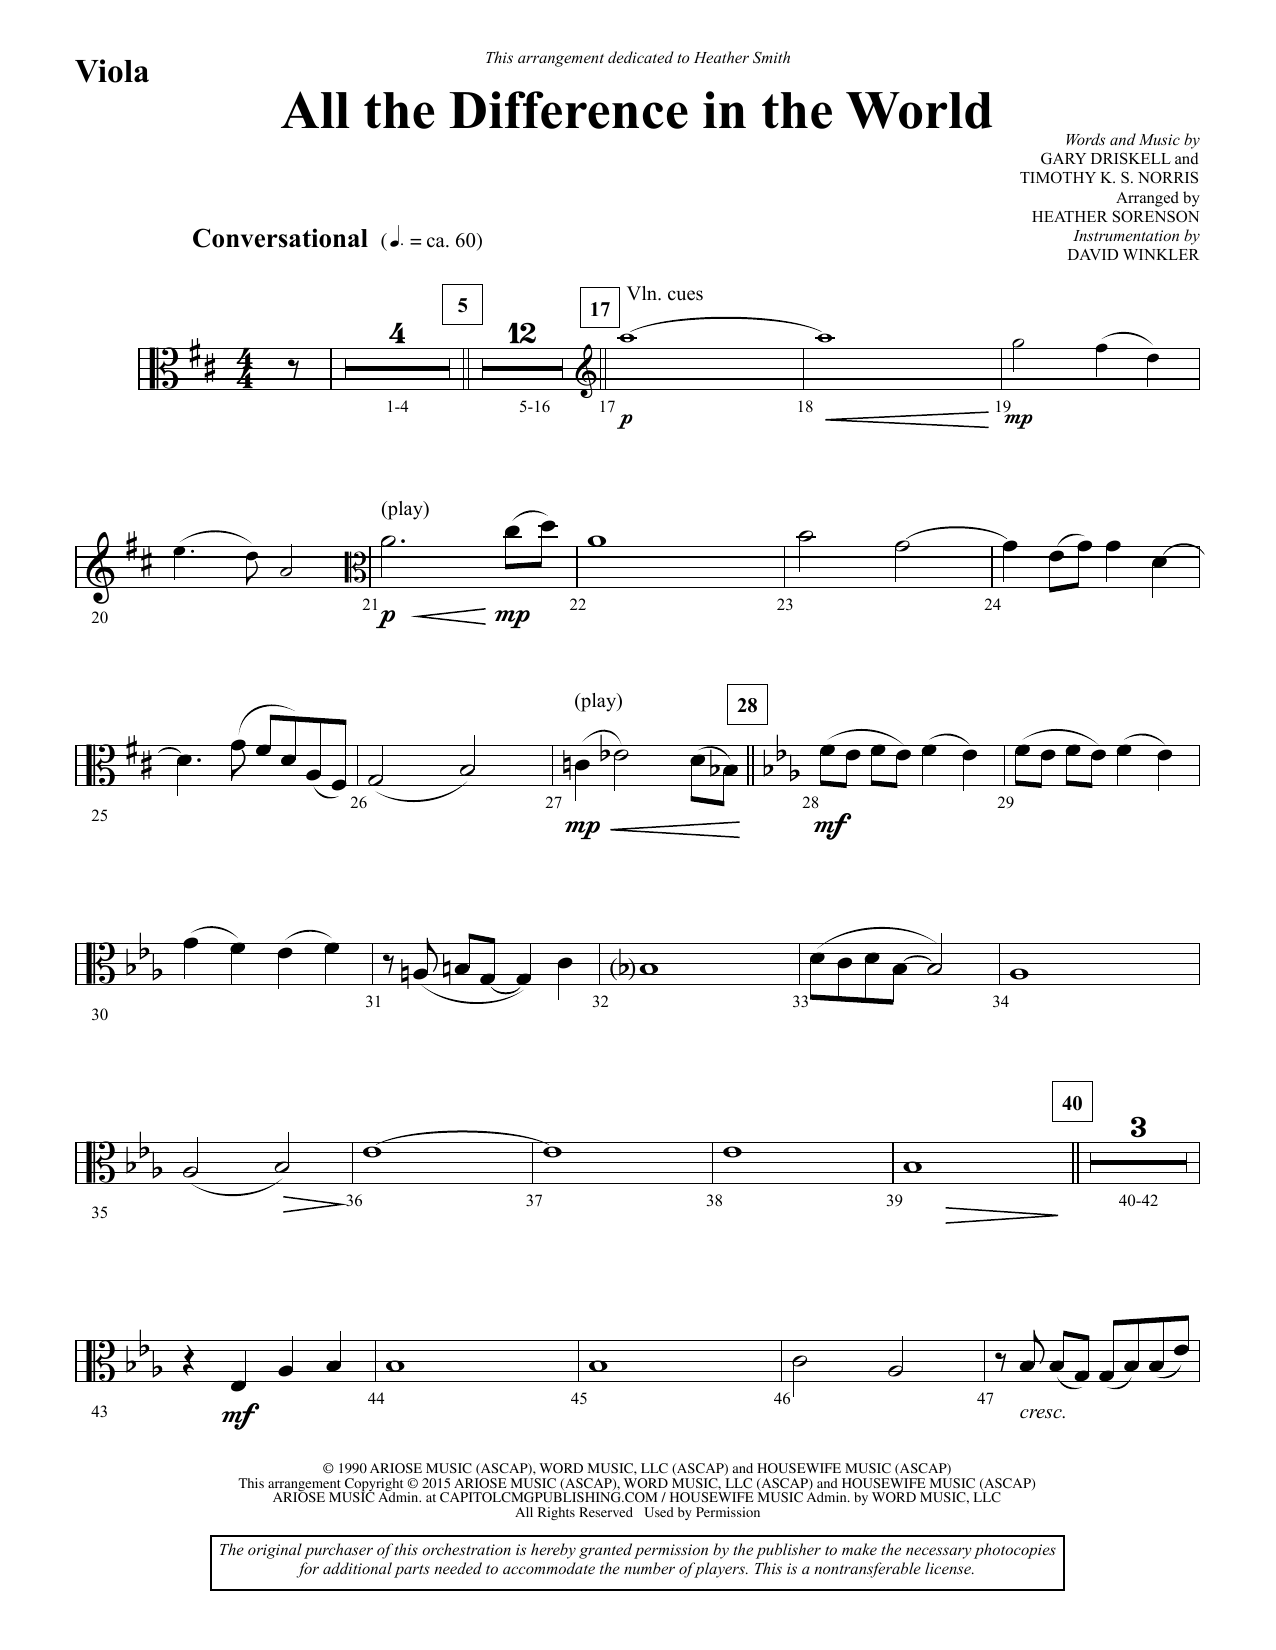 All the Difference in the World - Viola sheet music